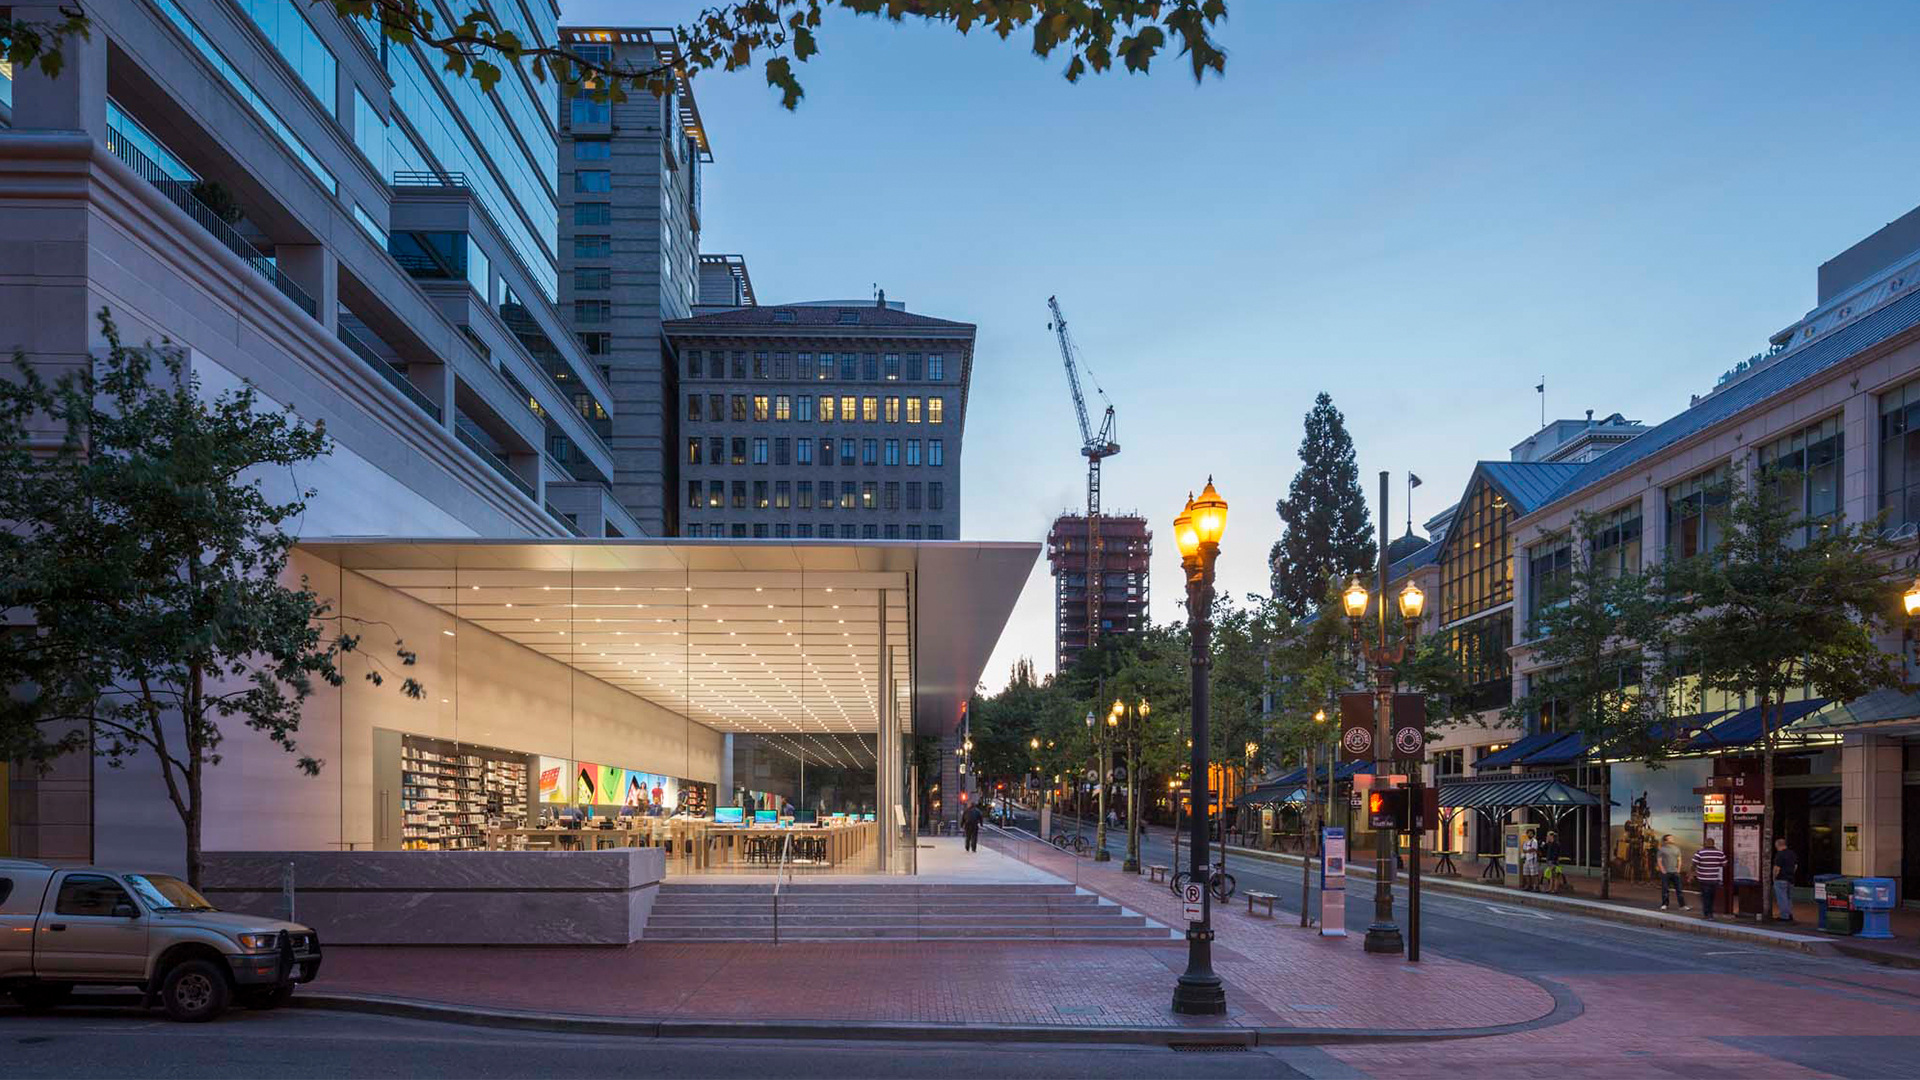 Portland Apple Store reopening May 31st with new video wall